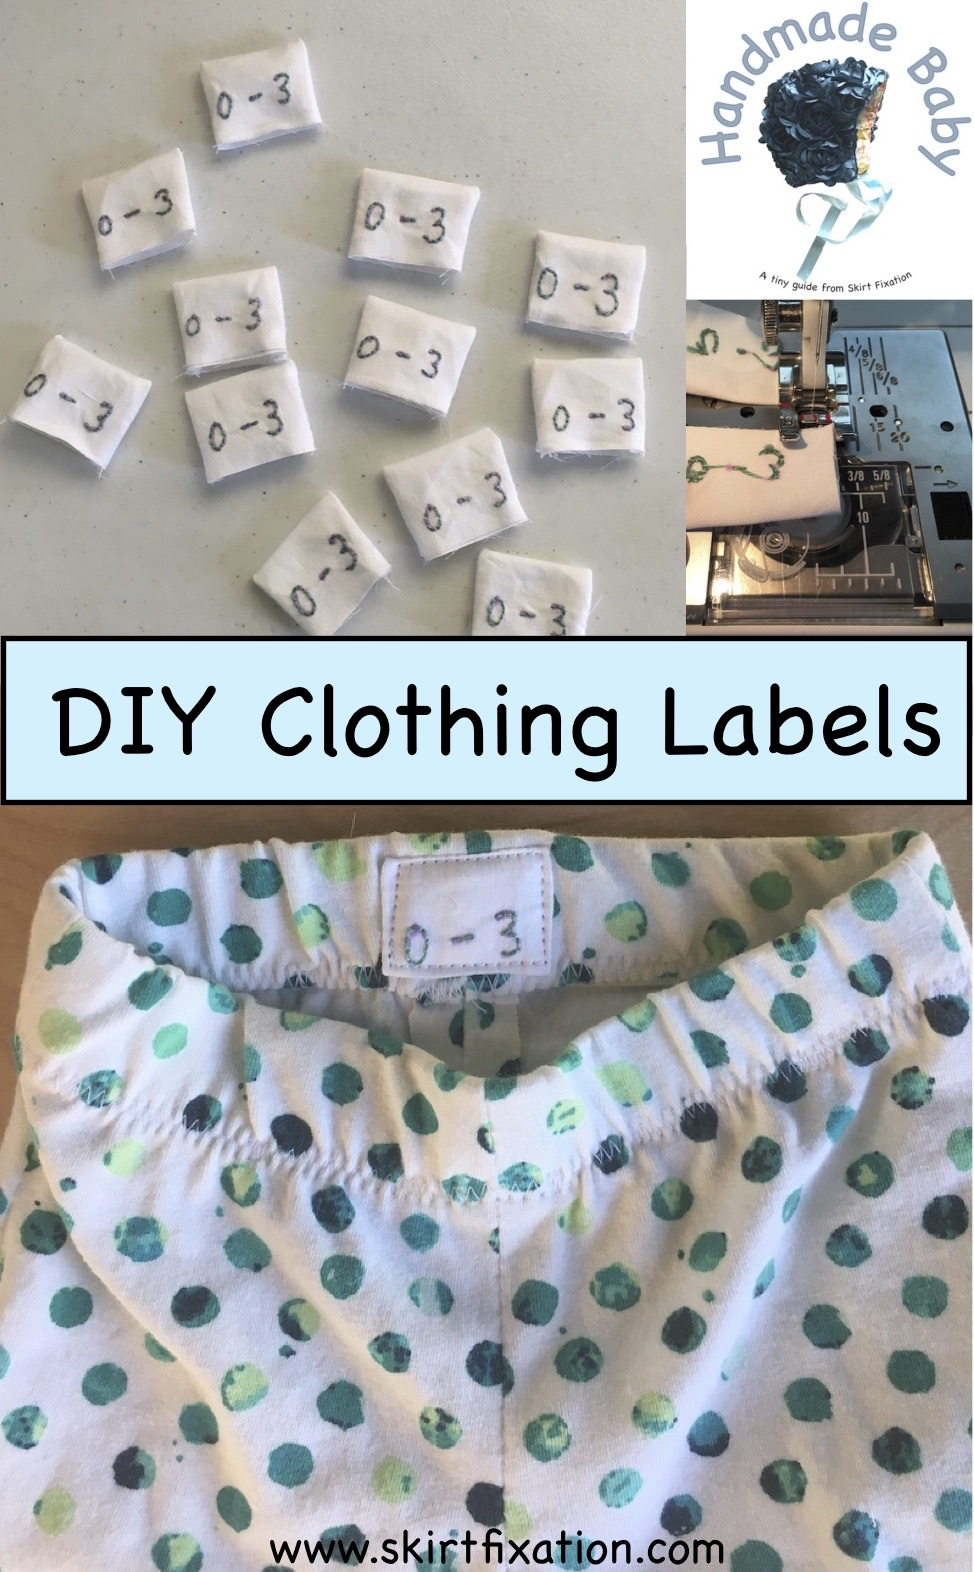 DIY Clothing Labels tutorial by Skirt Fixation